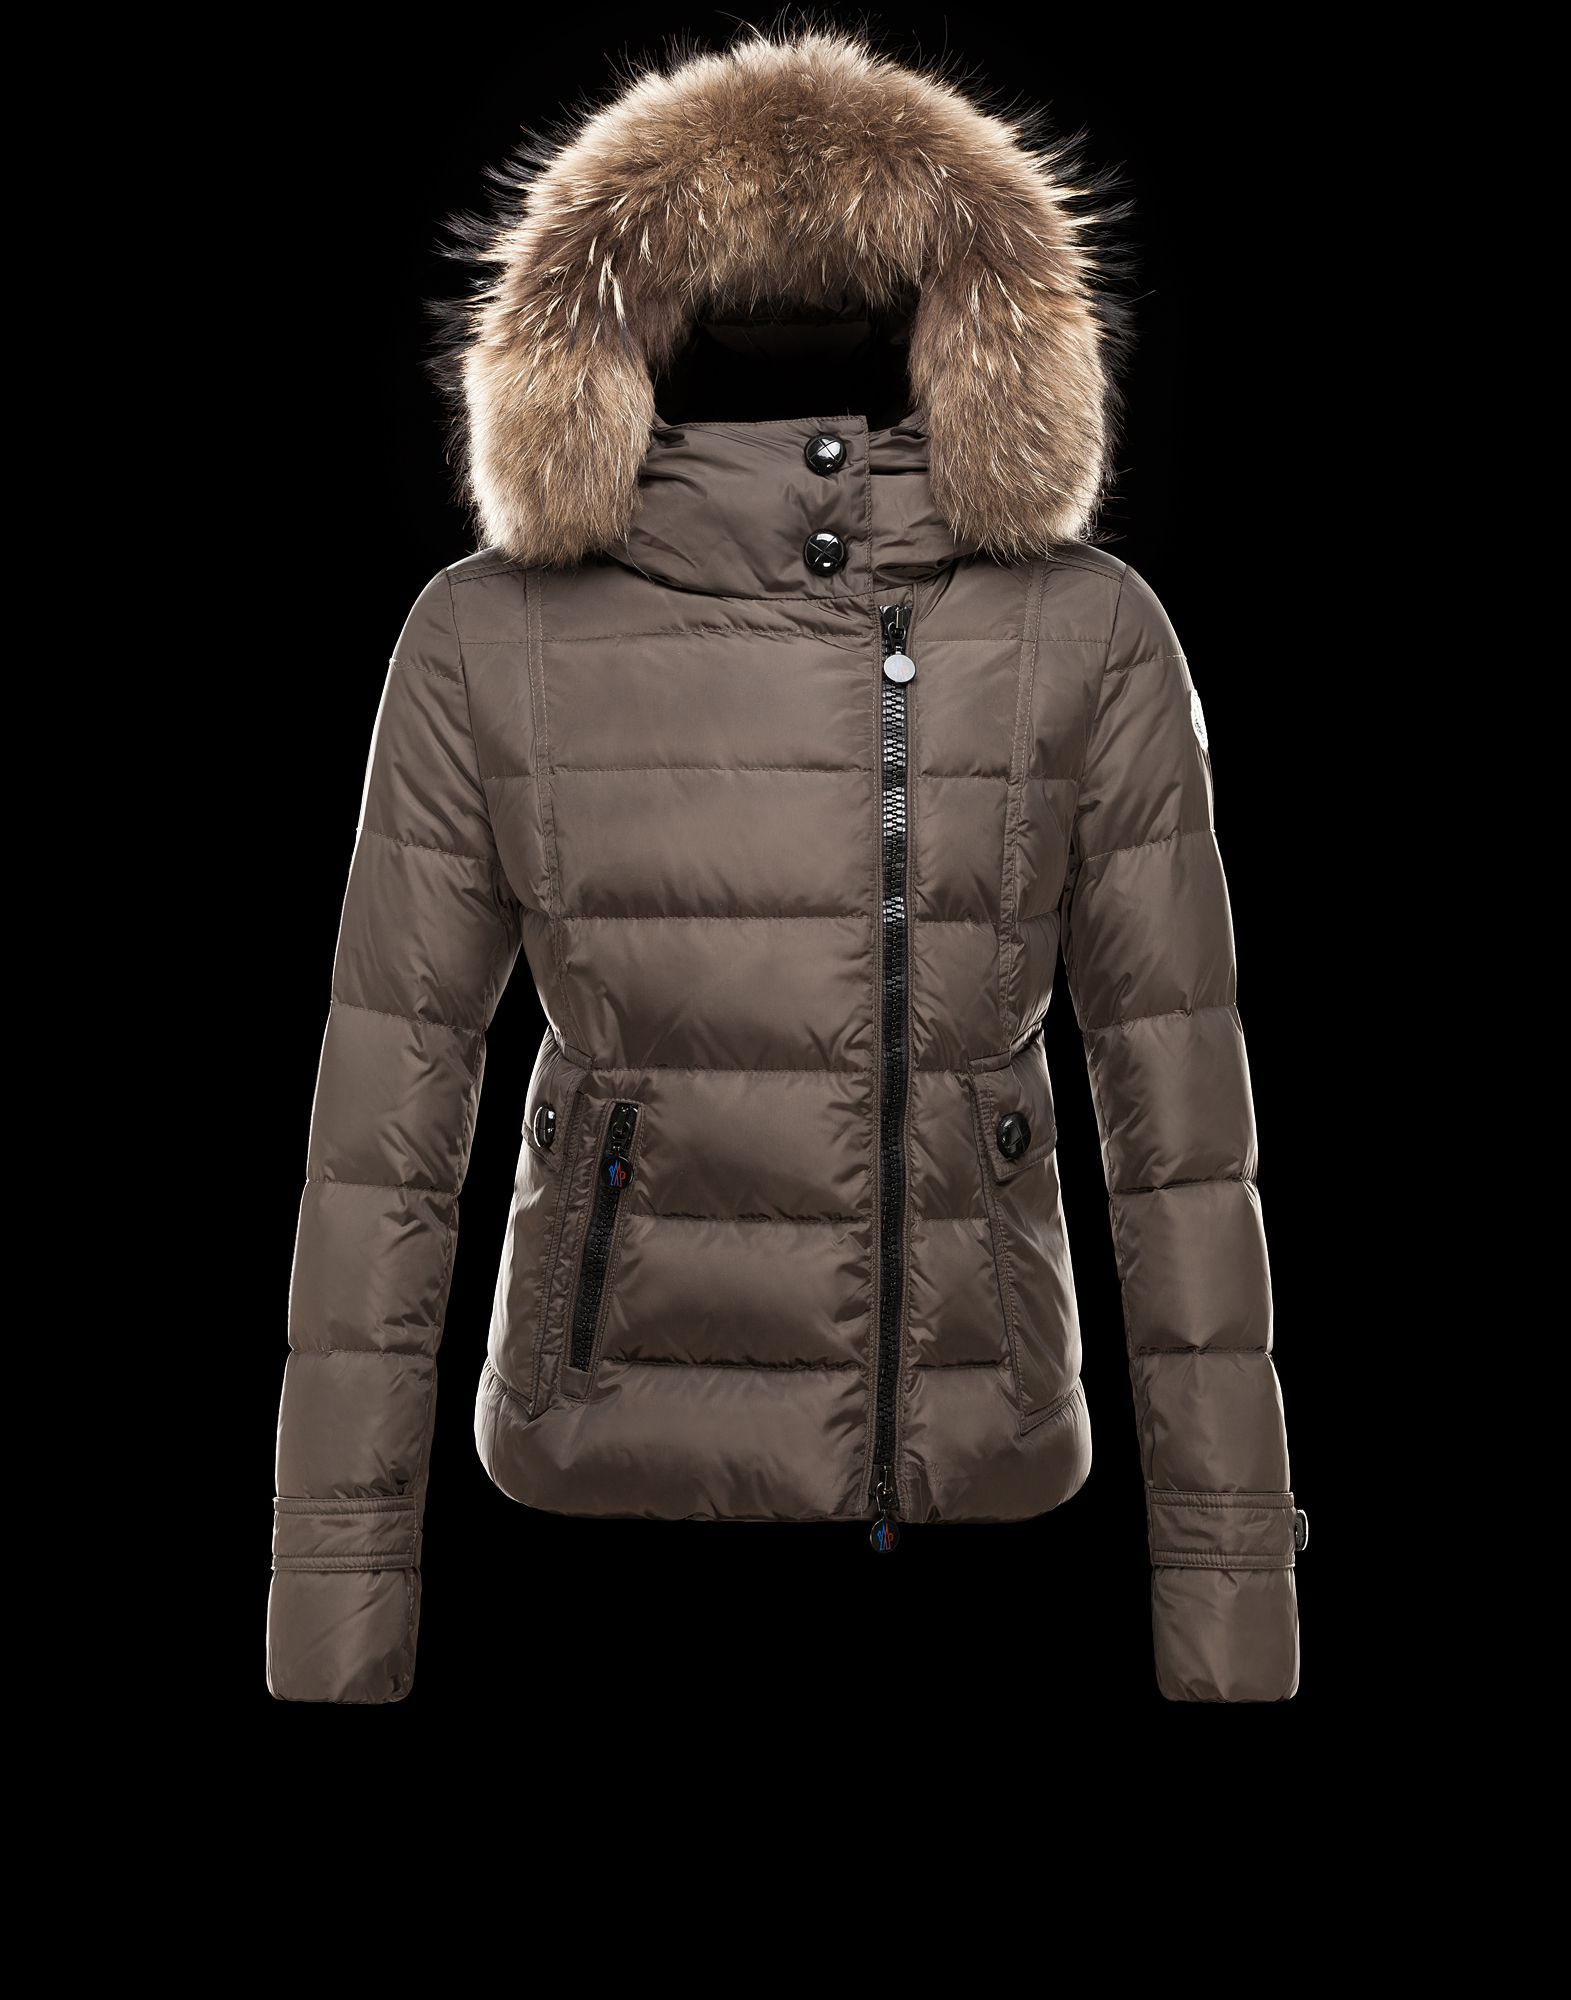 Jacket Women - Outerwear Women on Moncler Online Store | My Wish ...